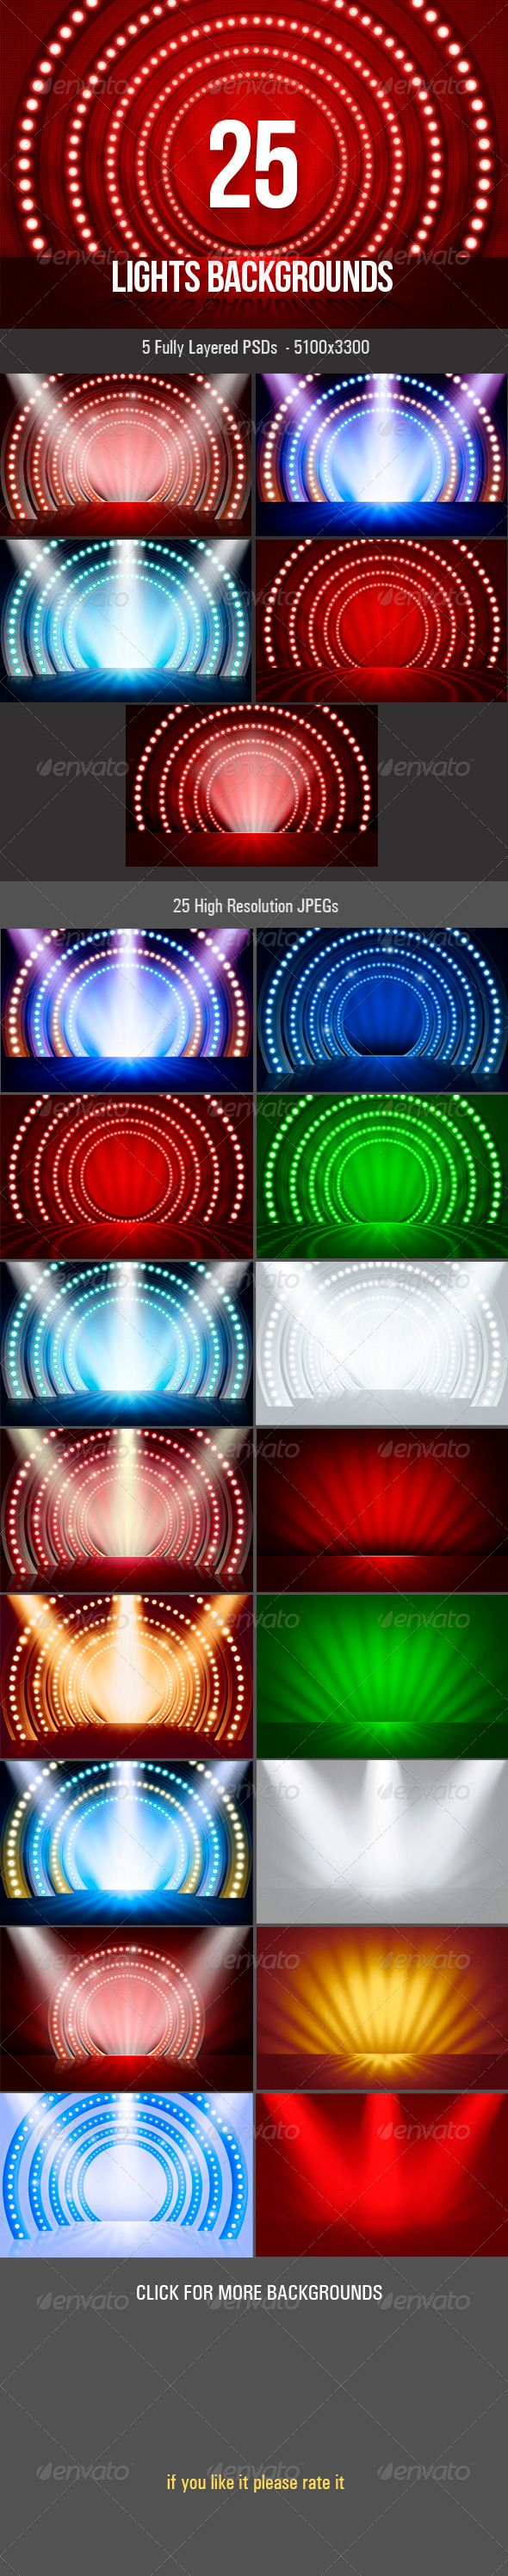 Lights Backgrounds  #dace background #web #display • Click here to download ! http://graphicriver.net/item/lights-backgrounds/3505539?ref=pxcr